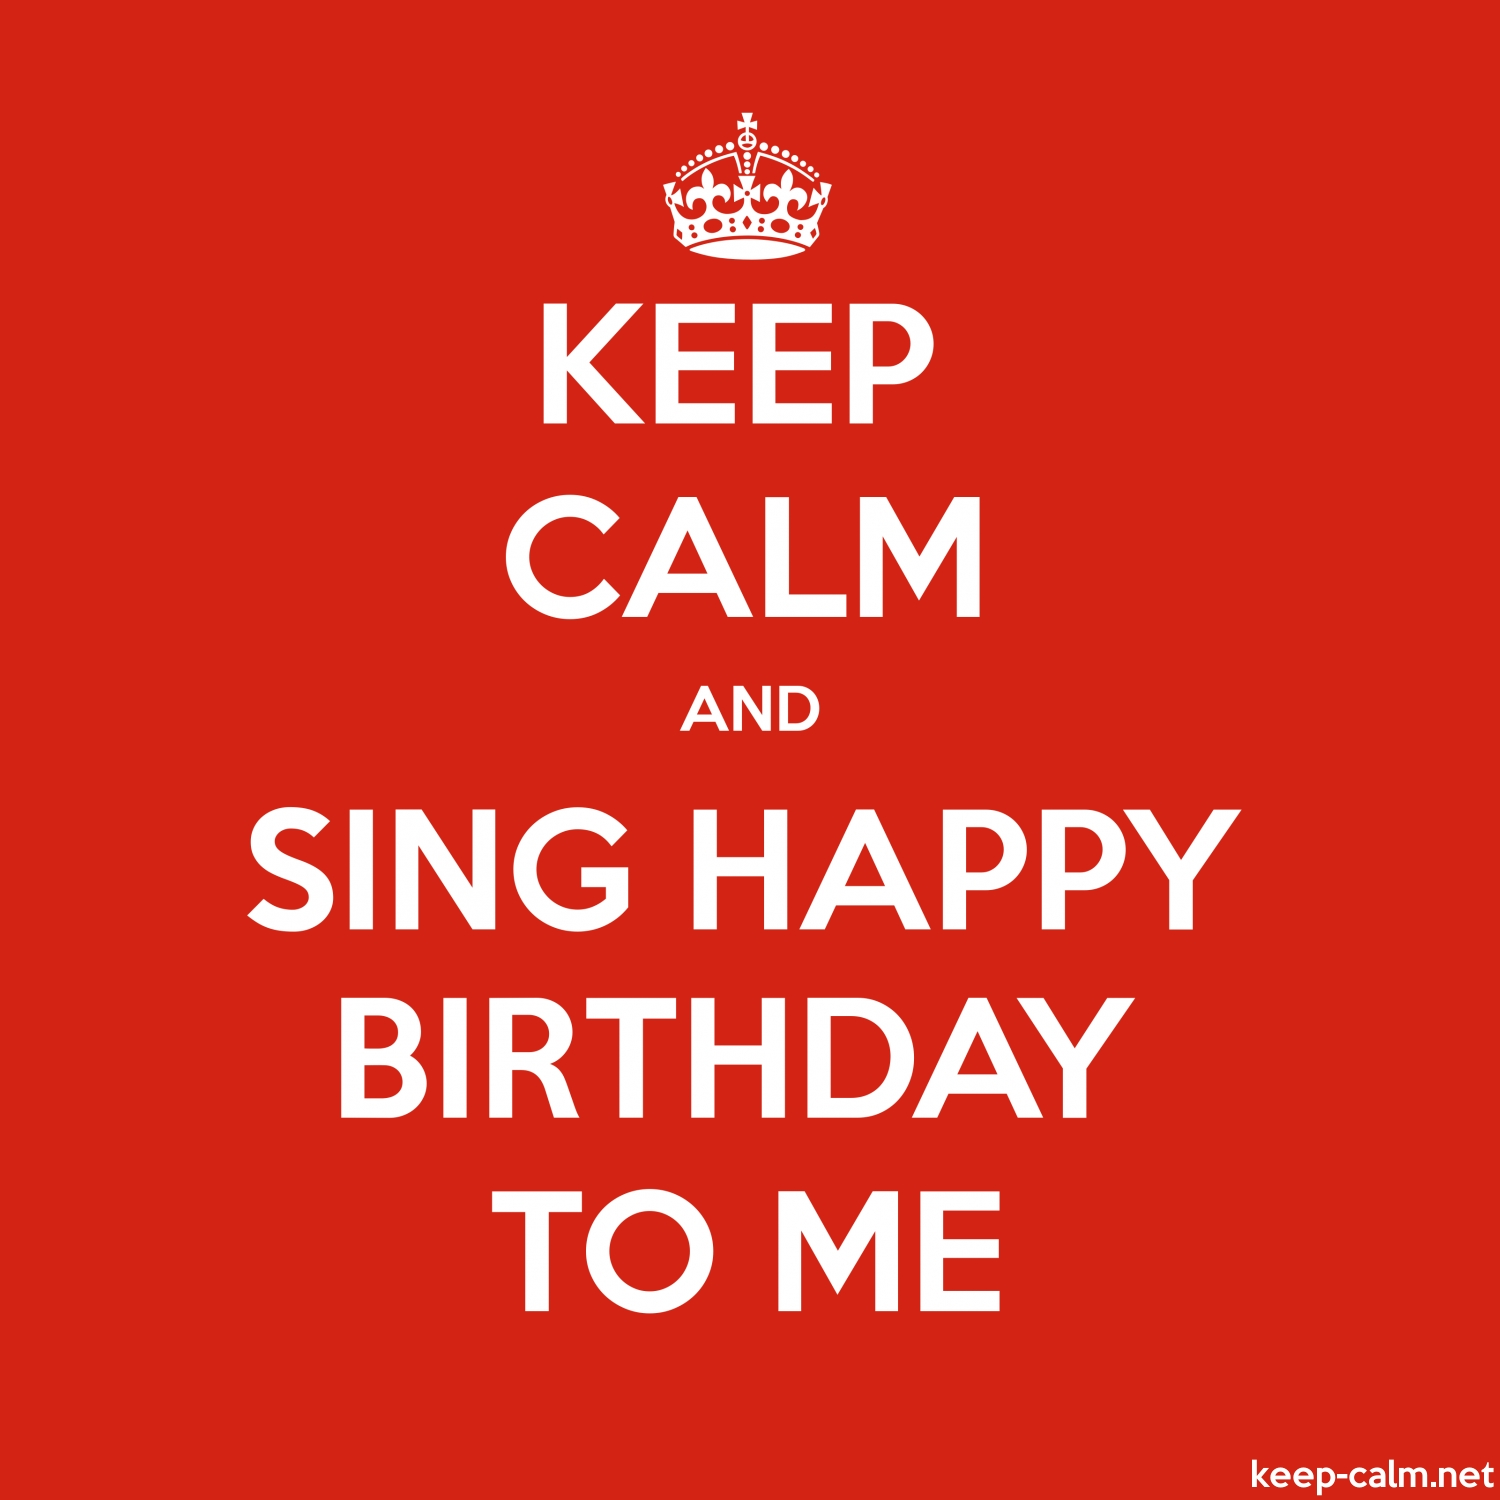 Happy Birthday To Me.Keep Calm And Sing Happy Birthday To Me Keep Calm Net